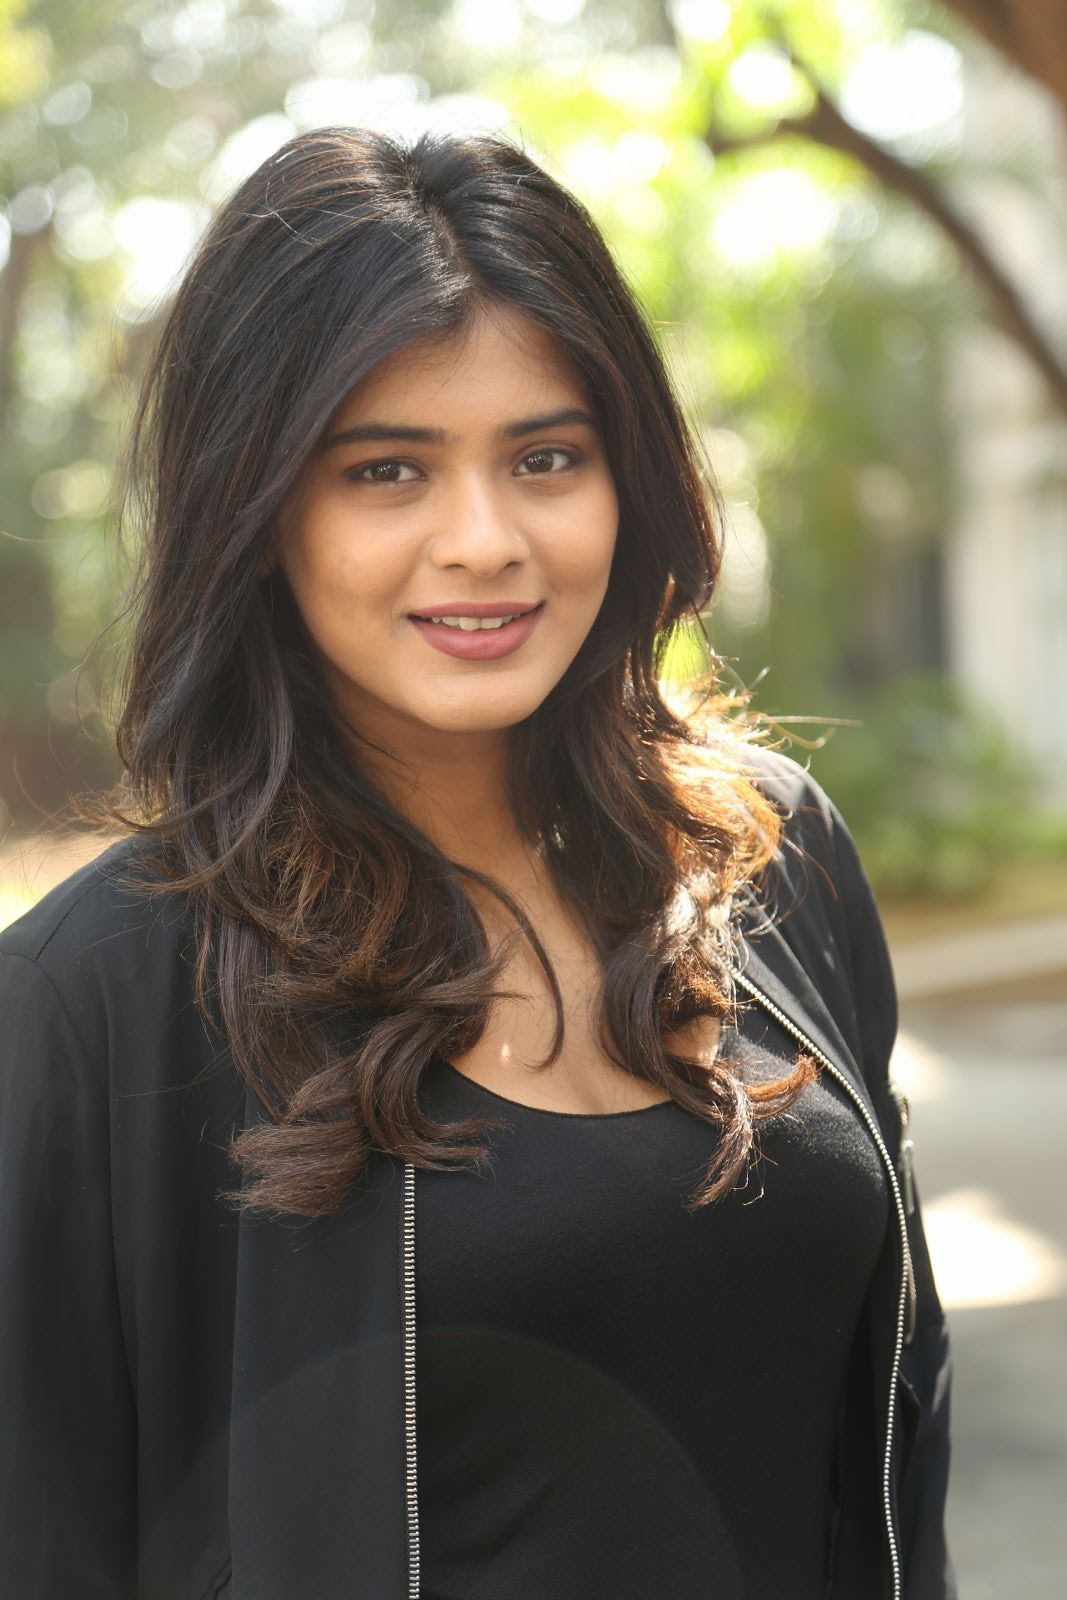 Hebah Patel naked (53 fotos) Boobs, 2020, cameltoe